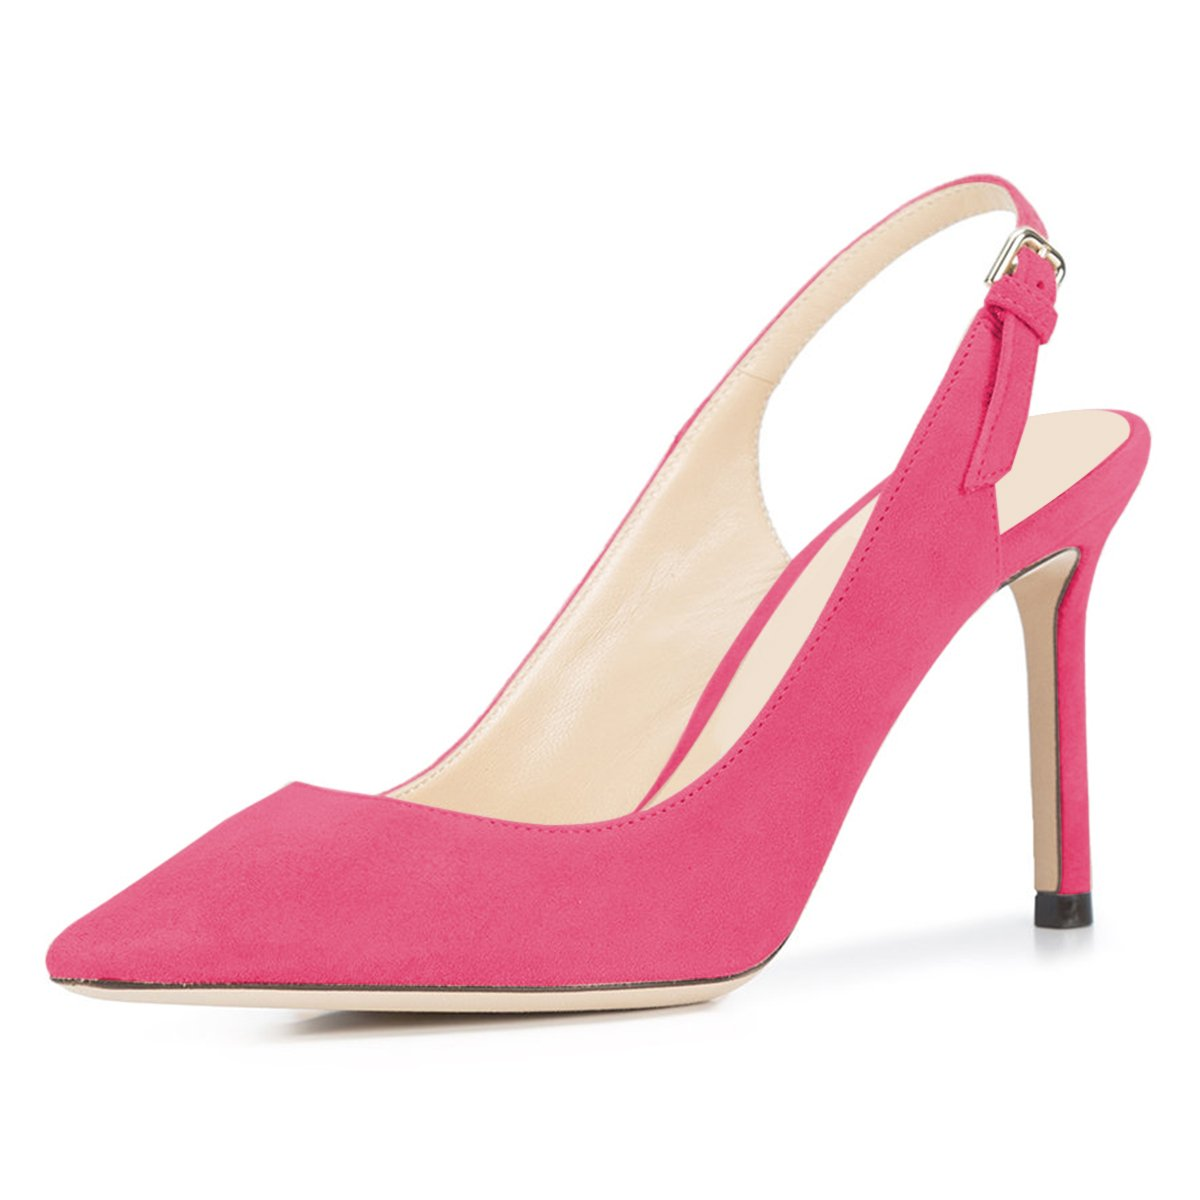 NJPU Women Pointed Toe Slingback Pumps Stiletto High Heels Office Shoes with Buckle B07C2QC49V 8 B(M) US|Pink